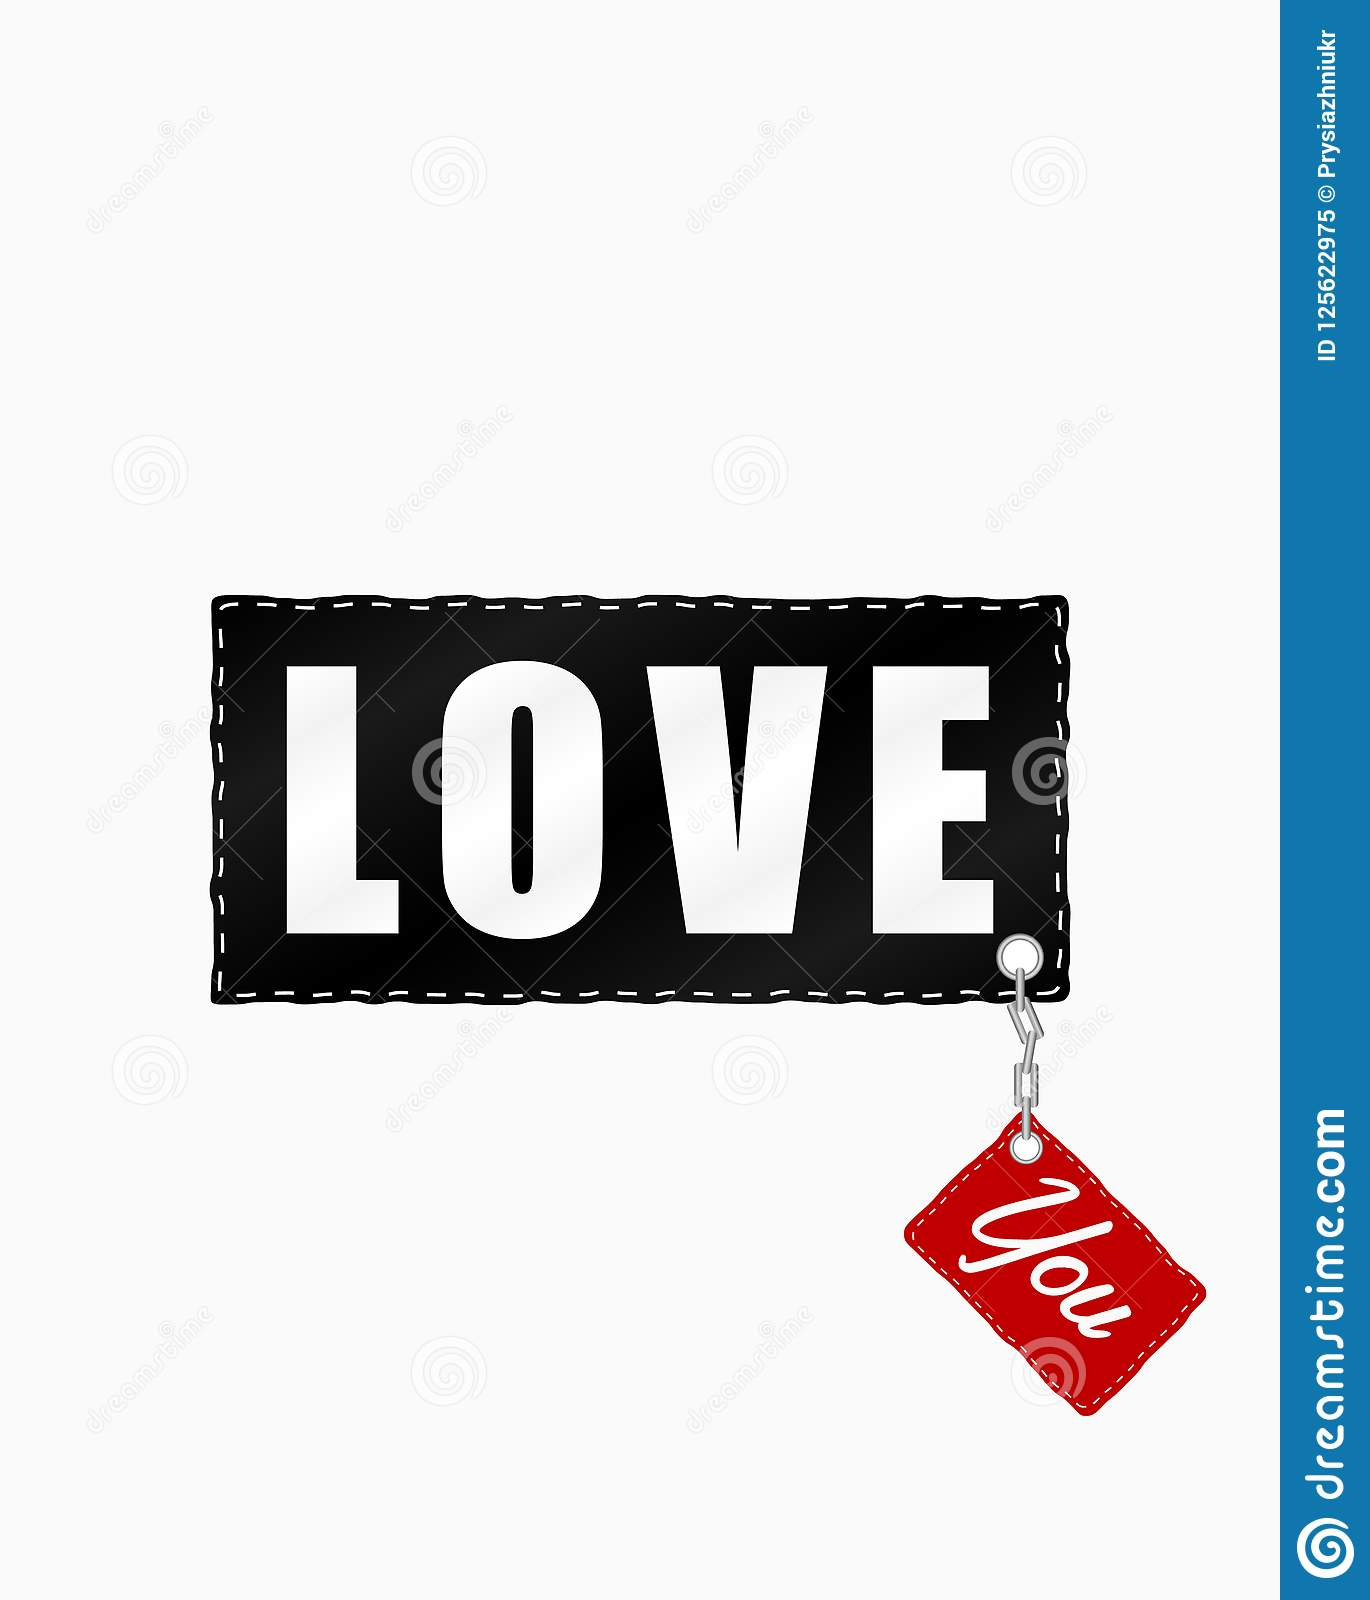 I Love You Slogan On Patch With Chain Fashion Typography For